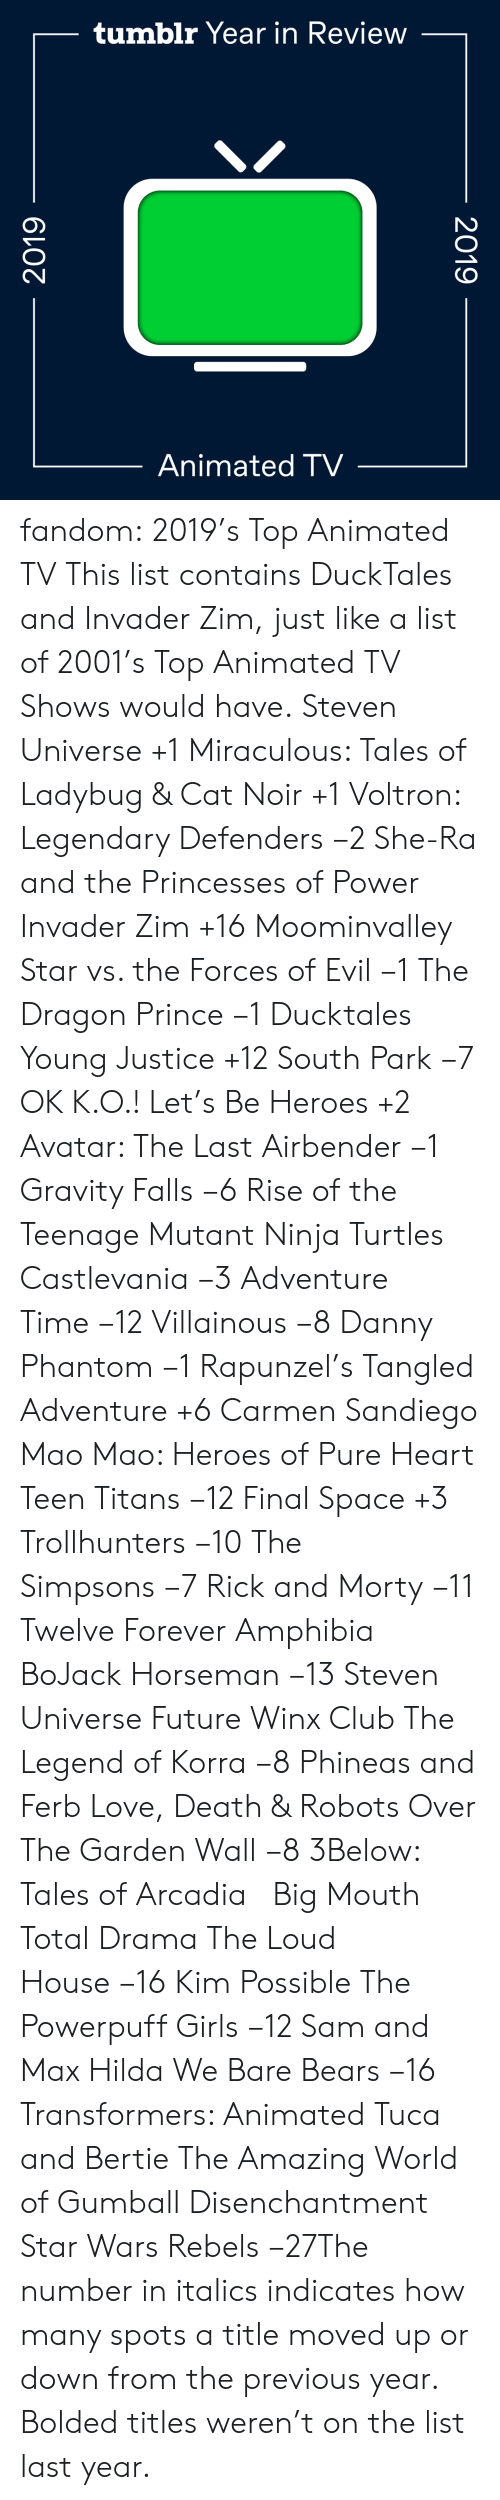 teen: tumblr Year in Review  Animated TV  2019  2019 fandom:  2019's Top Animated TV  This list contains DuckTales and Invader Zim, just like a list of 2001's Top Animated TV Shows would have.  Steven Universe +1  Miraculous: Tales of Ladybug & Cat Noir +1  Voltron: Legendary Defenders −2  She-Ra and the Princesses of Power   Invader Zim +16  Moominvalley  Star vs. the Forces of Evil −1  The Dragon Prince −1  Ducktales  Young Justice +12  South Park −7  OK K.O.! Let's Be Heroes +2  Avatar: The Last Airbender −1  Gravity Falls −6  Rise of the Teenage Mutant Ninja Turtles  Castlevania −3  Adventure Time −12  Villainous −8  Danny Phantom −1  Rapunzel's Tangled Adventure +6  Carmen Sandiego  Mao Mao: Heroes of Pure Heart  Teen Titans −12  Final Space +3  Trollhunters −10  The Simpsons −7  Rick and Morty −11  Twelve Forever  Amphibia  BoJack Horseman −13  Steven Universe Future  Winx Club  The Legend of Korra −8  Phineas and Ferb  Love, Death & Robots  Over The Garden Wall −8  3Below: Tales of Arcadia    Big Mouth  Total Drama  The Loud House −16  Kim Possible  The Powerpuff Girls −12  Sam and Max  Hilda  We Bare Bears −16  Transformers: Animated  Tuca and Bertie  The Amazing World of Gumball  Disenchantment Star Wars Rebels −27The number in italics indicates how many spots a title moved up or down from the previous year. Bolded titles weren't on the list last year.